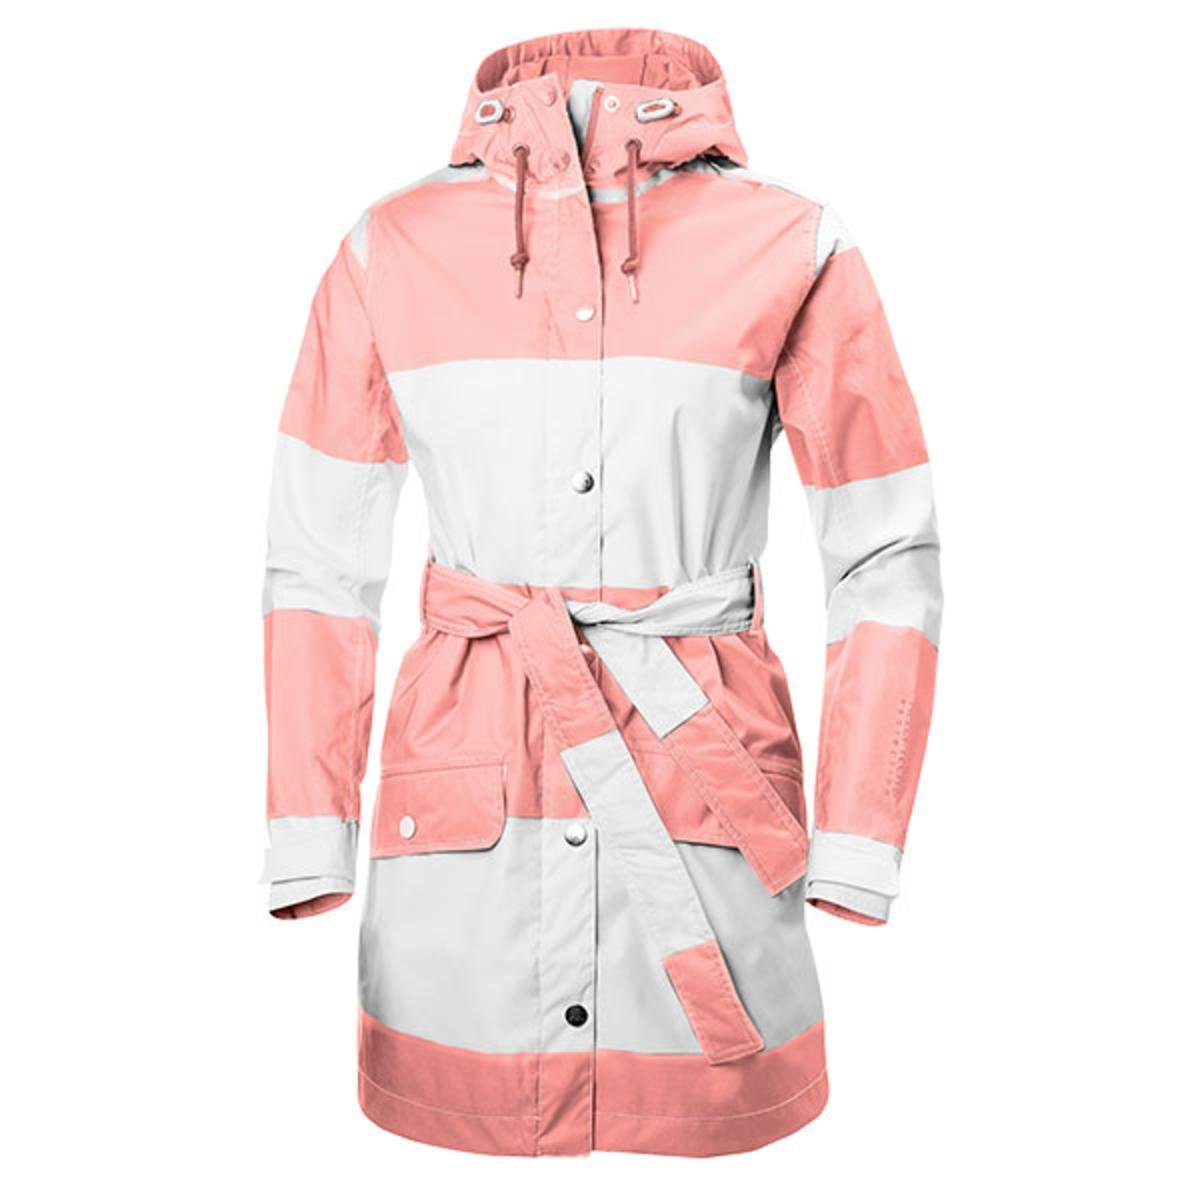 31cee609 Helly Hansen Women's Lyness Insulated Coat - The Warming Store